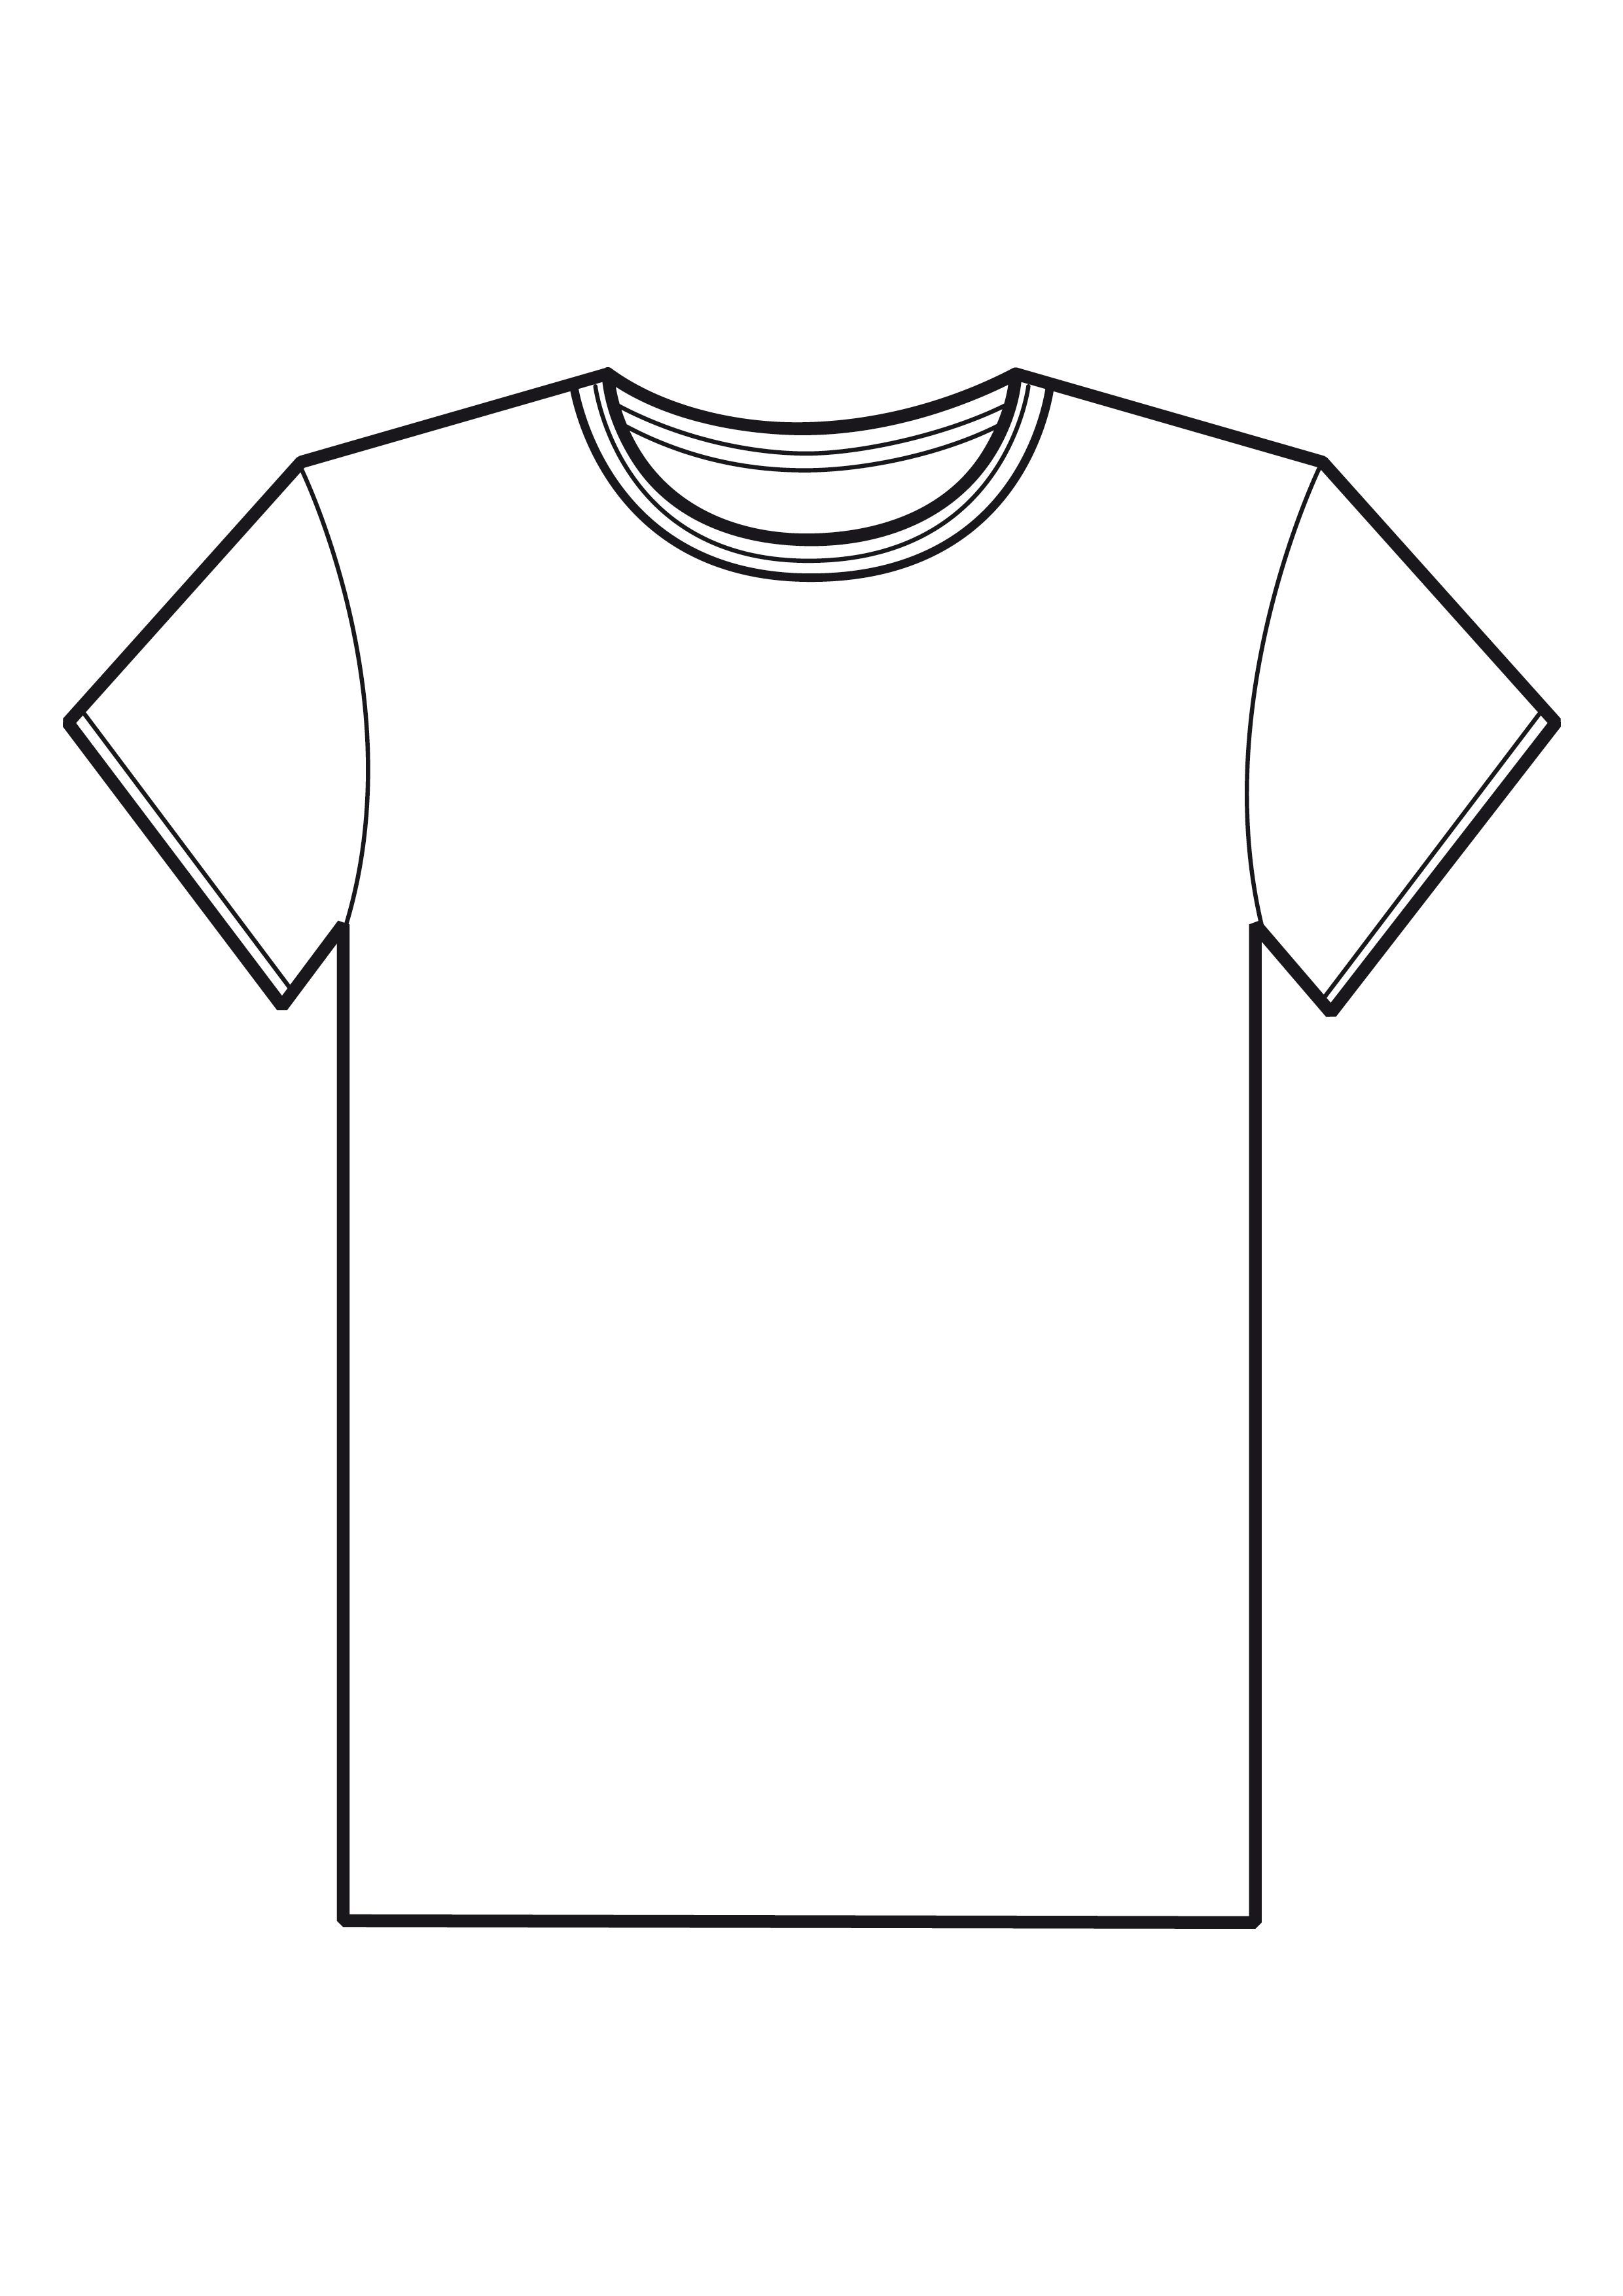 2491 Views Blank T Shirts T Shirt Picture Shirt Template